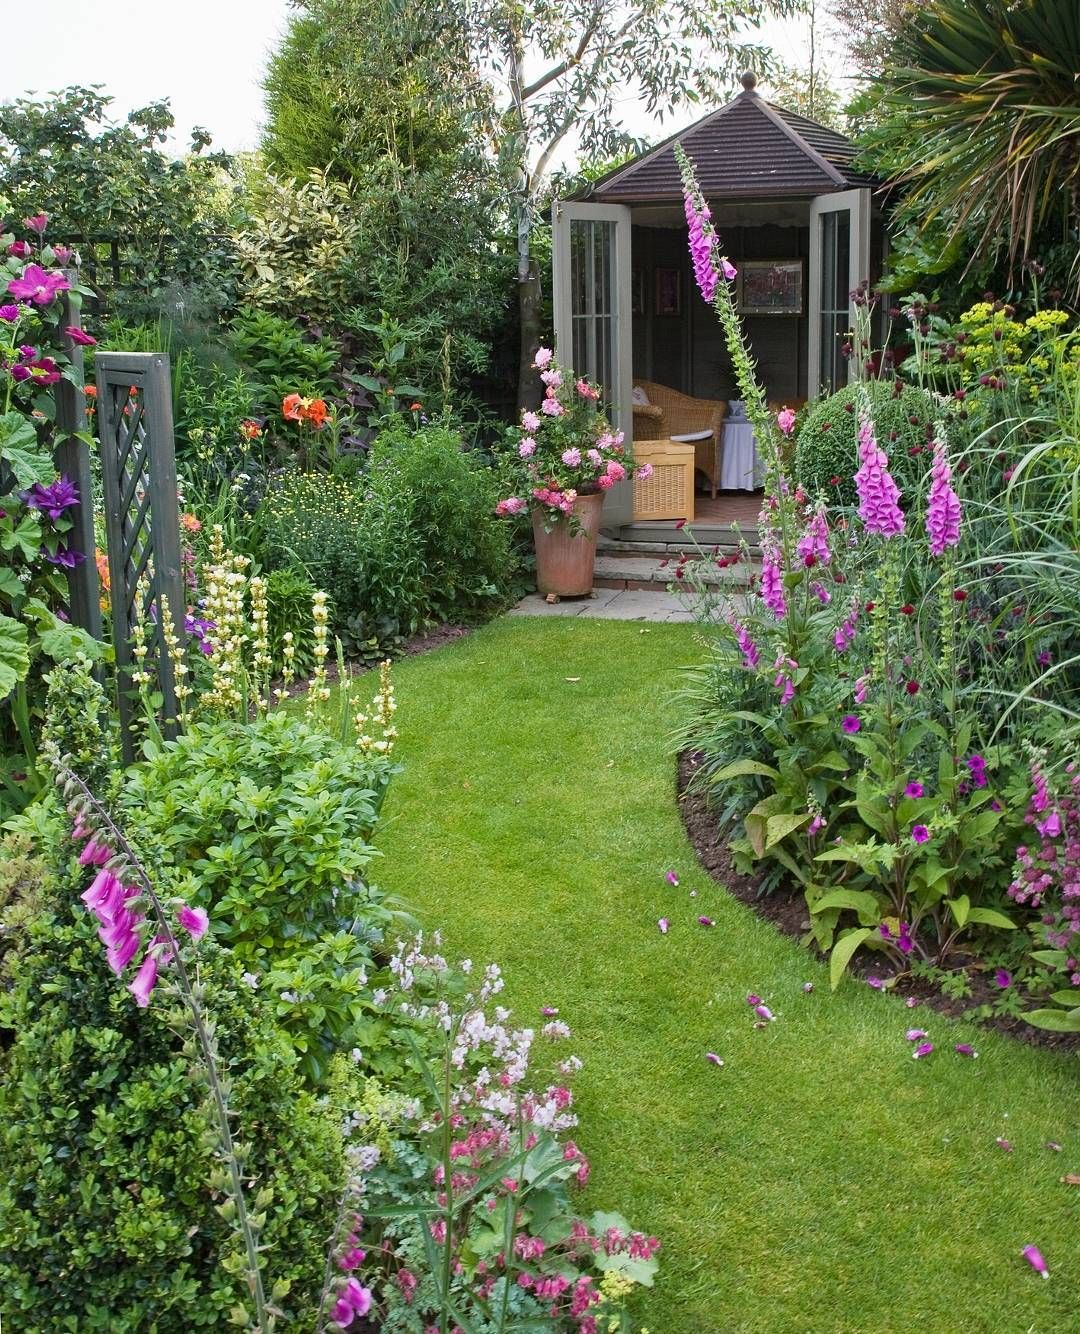 Small Garden With Decked Path And Arbour: We'd Never Make It To Our Actual House With A She Shed